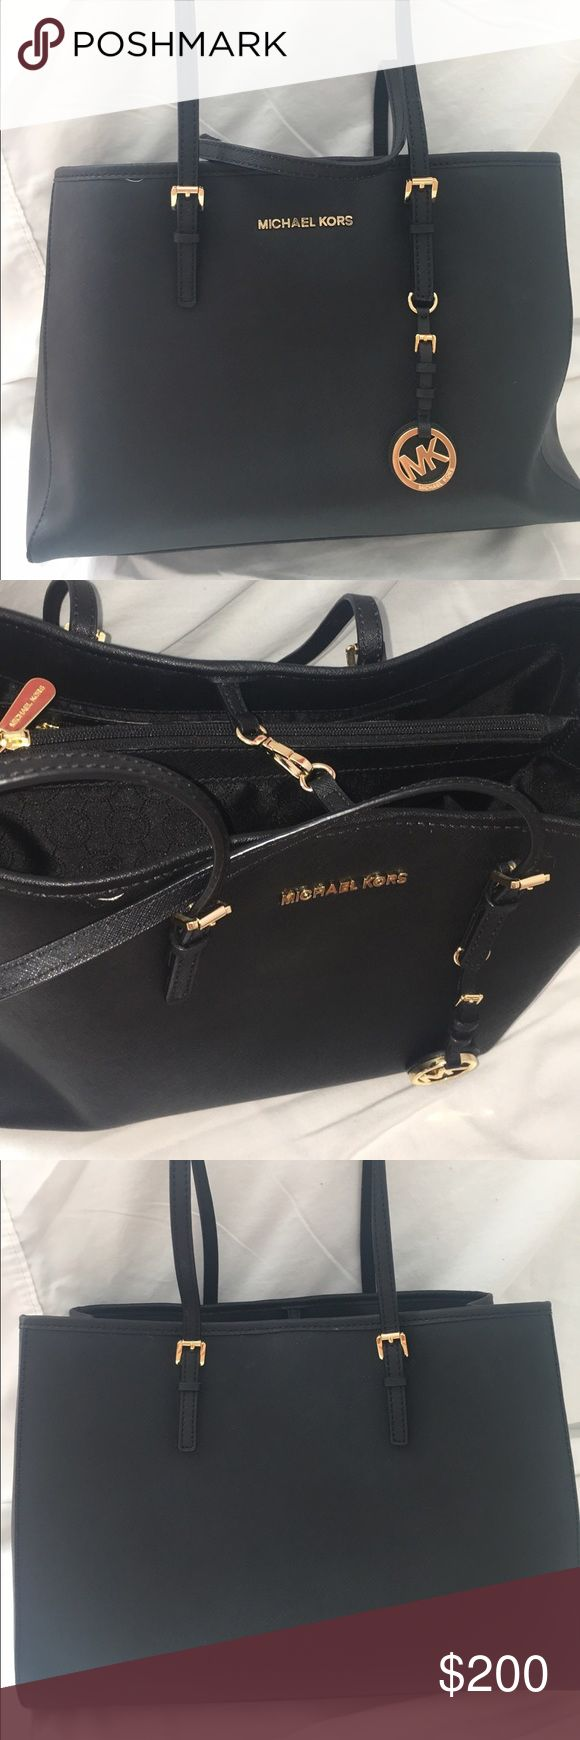 Black Michael Kors Saffiano Leather Jet Set Tote New without tags, light scratches on bottom hard ware from sitting on rough surface, unnoticeable. paypal/apple pay preferred. make and offer!! i cant say yes if you dont ask!!😊 Michael Kors Bags Totes